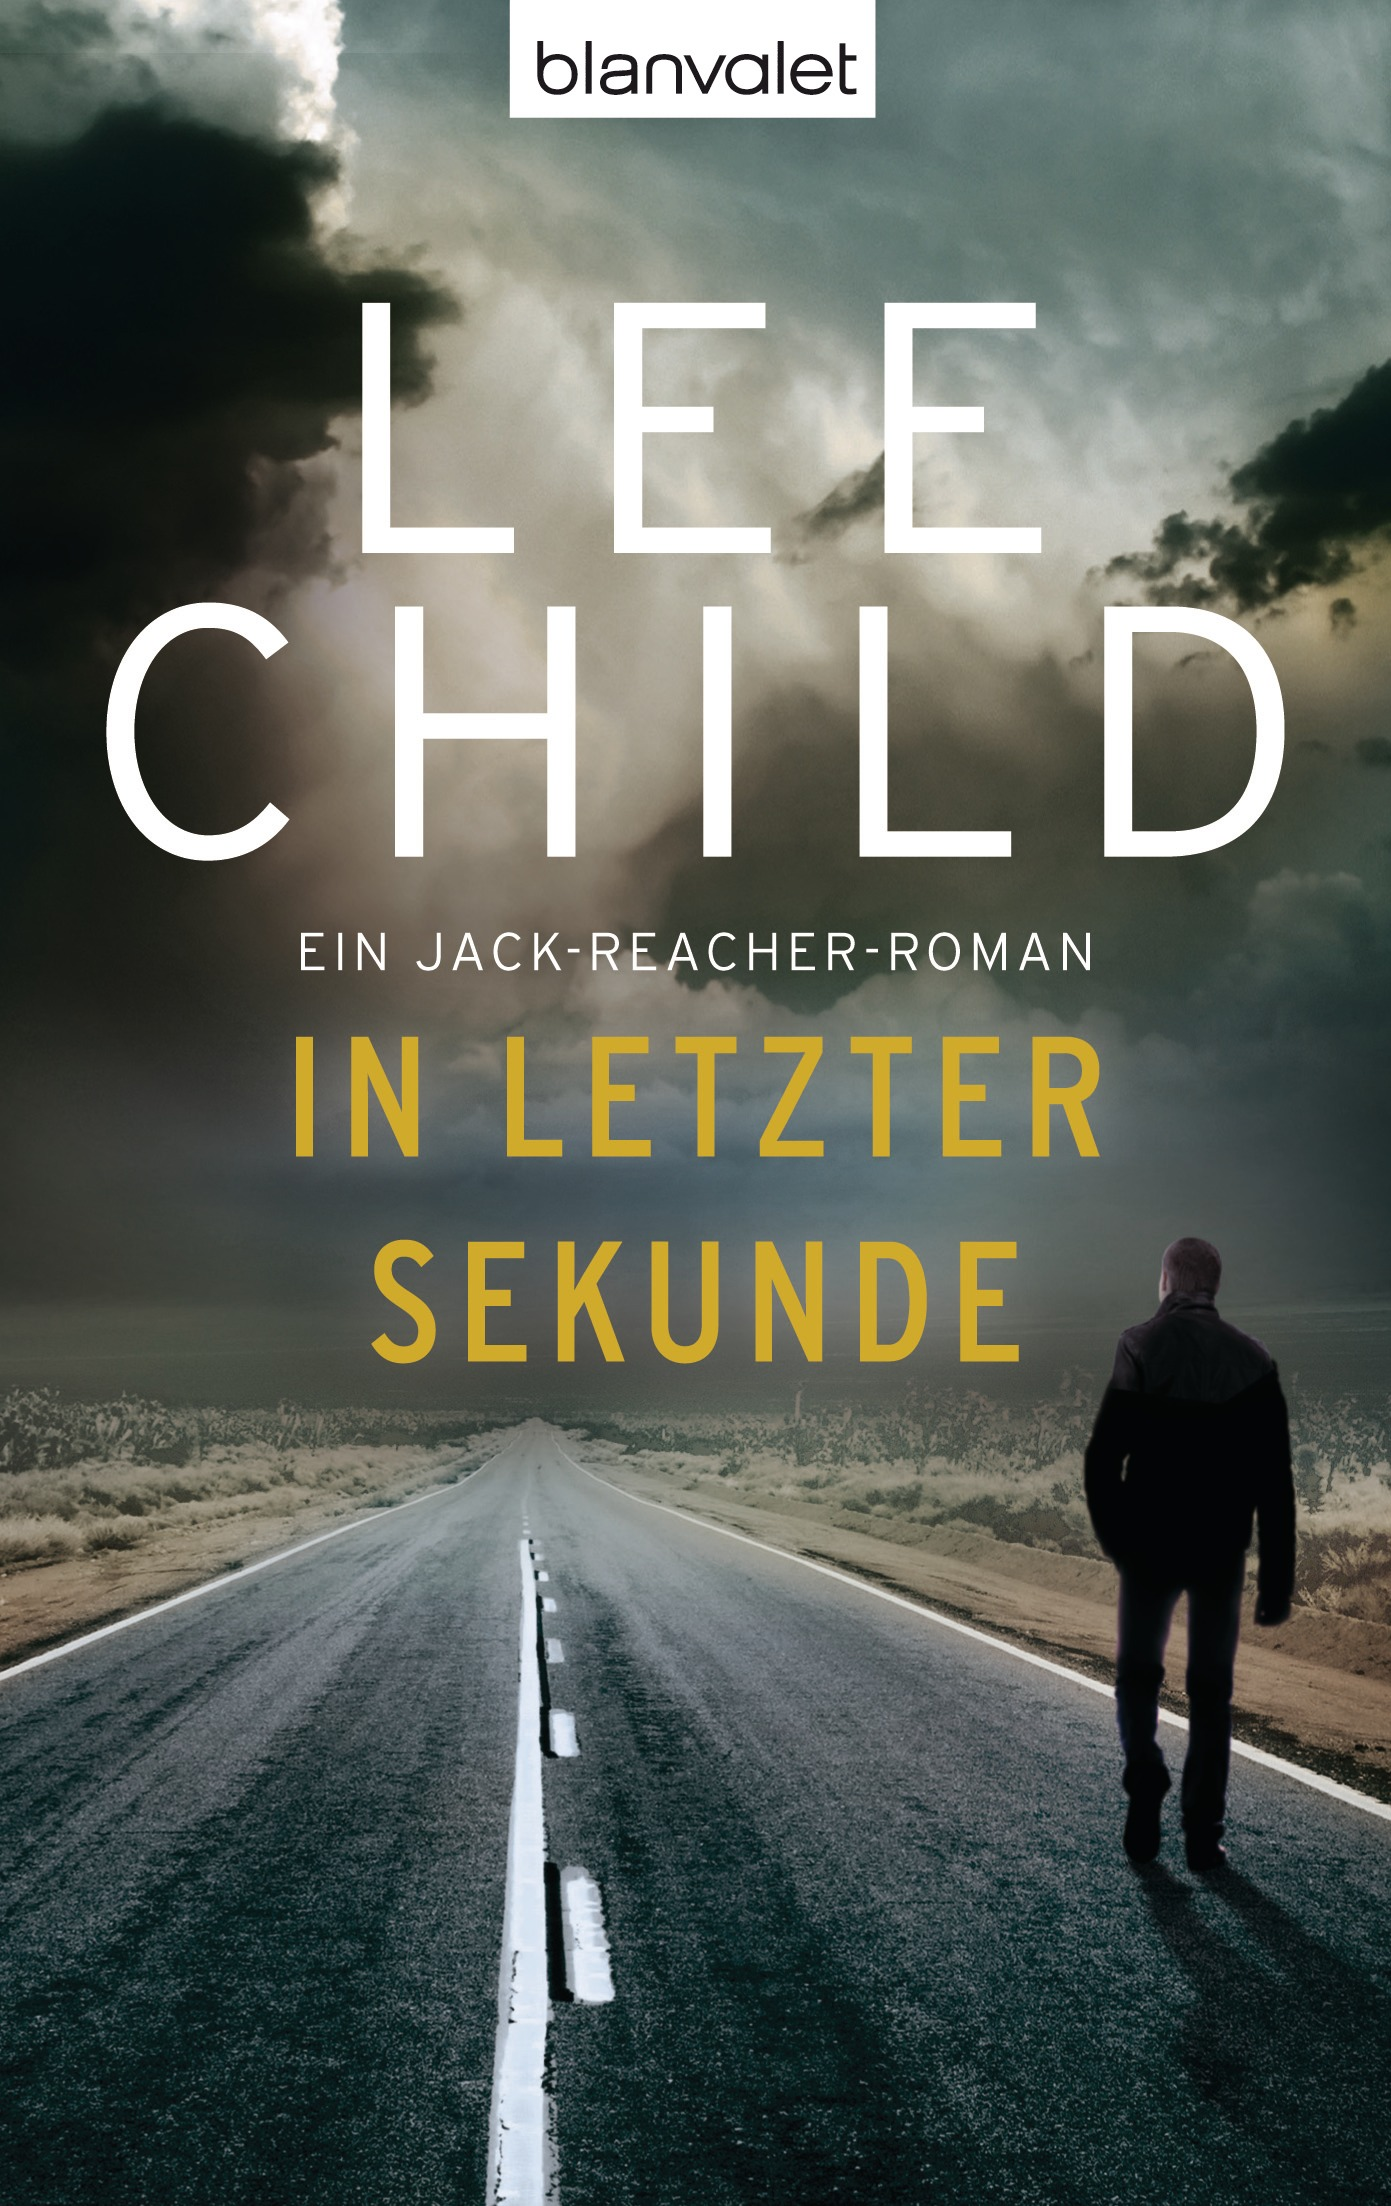 In letzter Sekunde: Ein Jack-Reacher-Roman - Lee Child